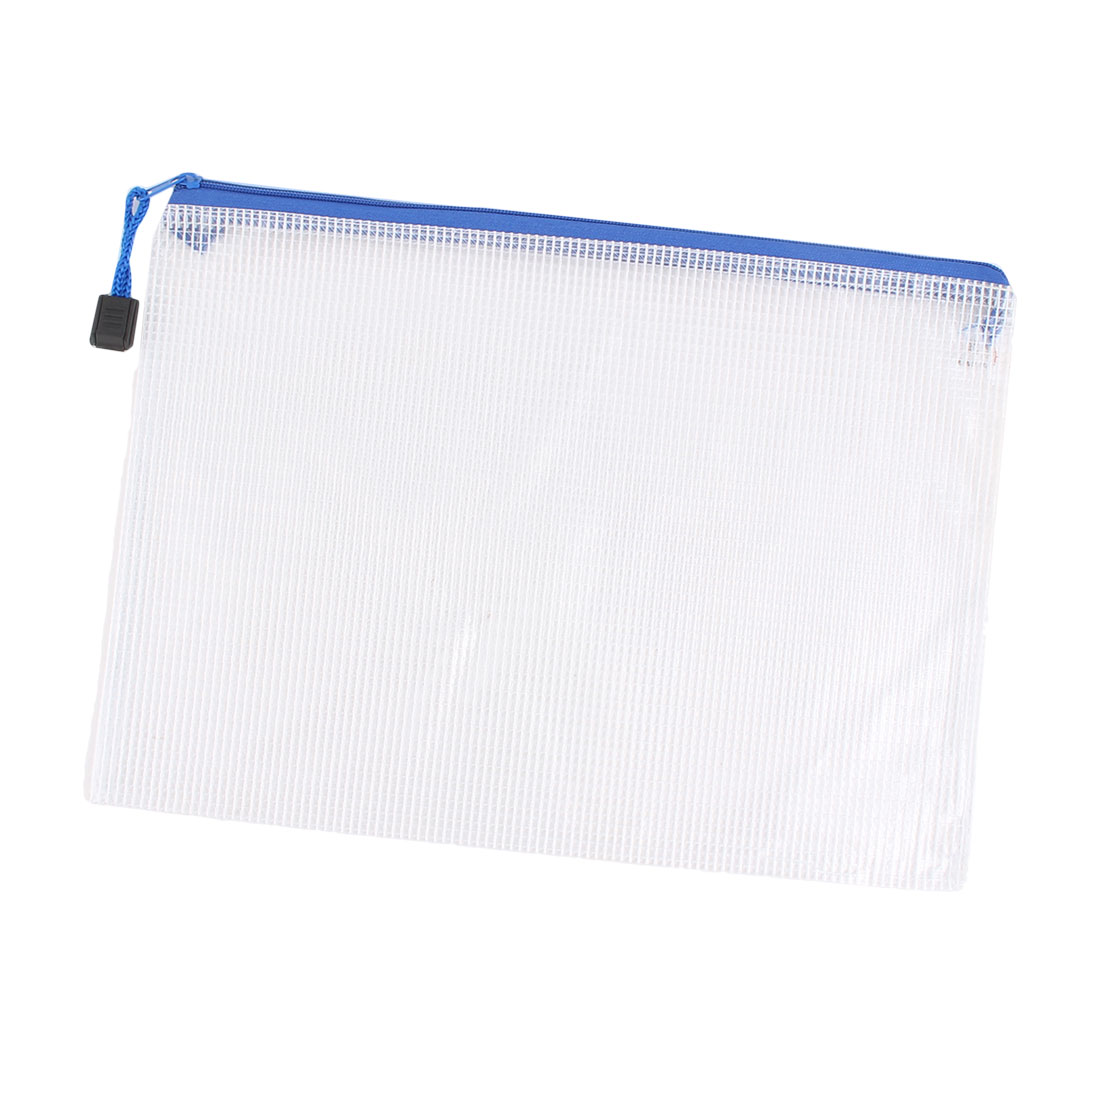 School Office A5 Magazine Document File Zippy Closure Folder Holder Bag White